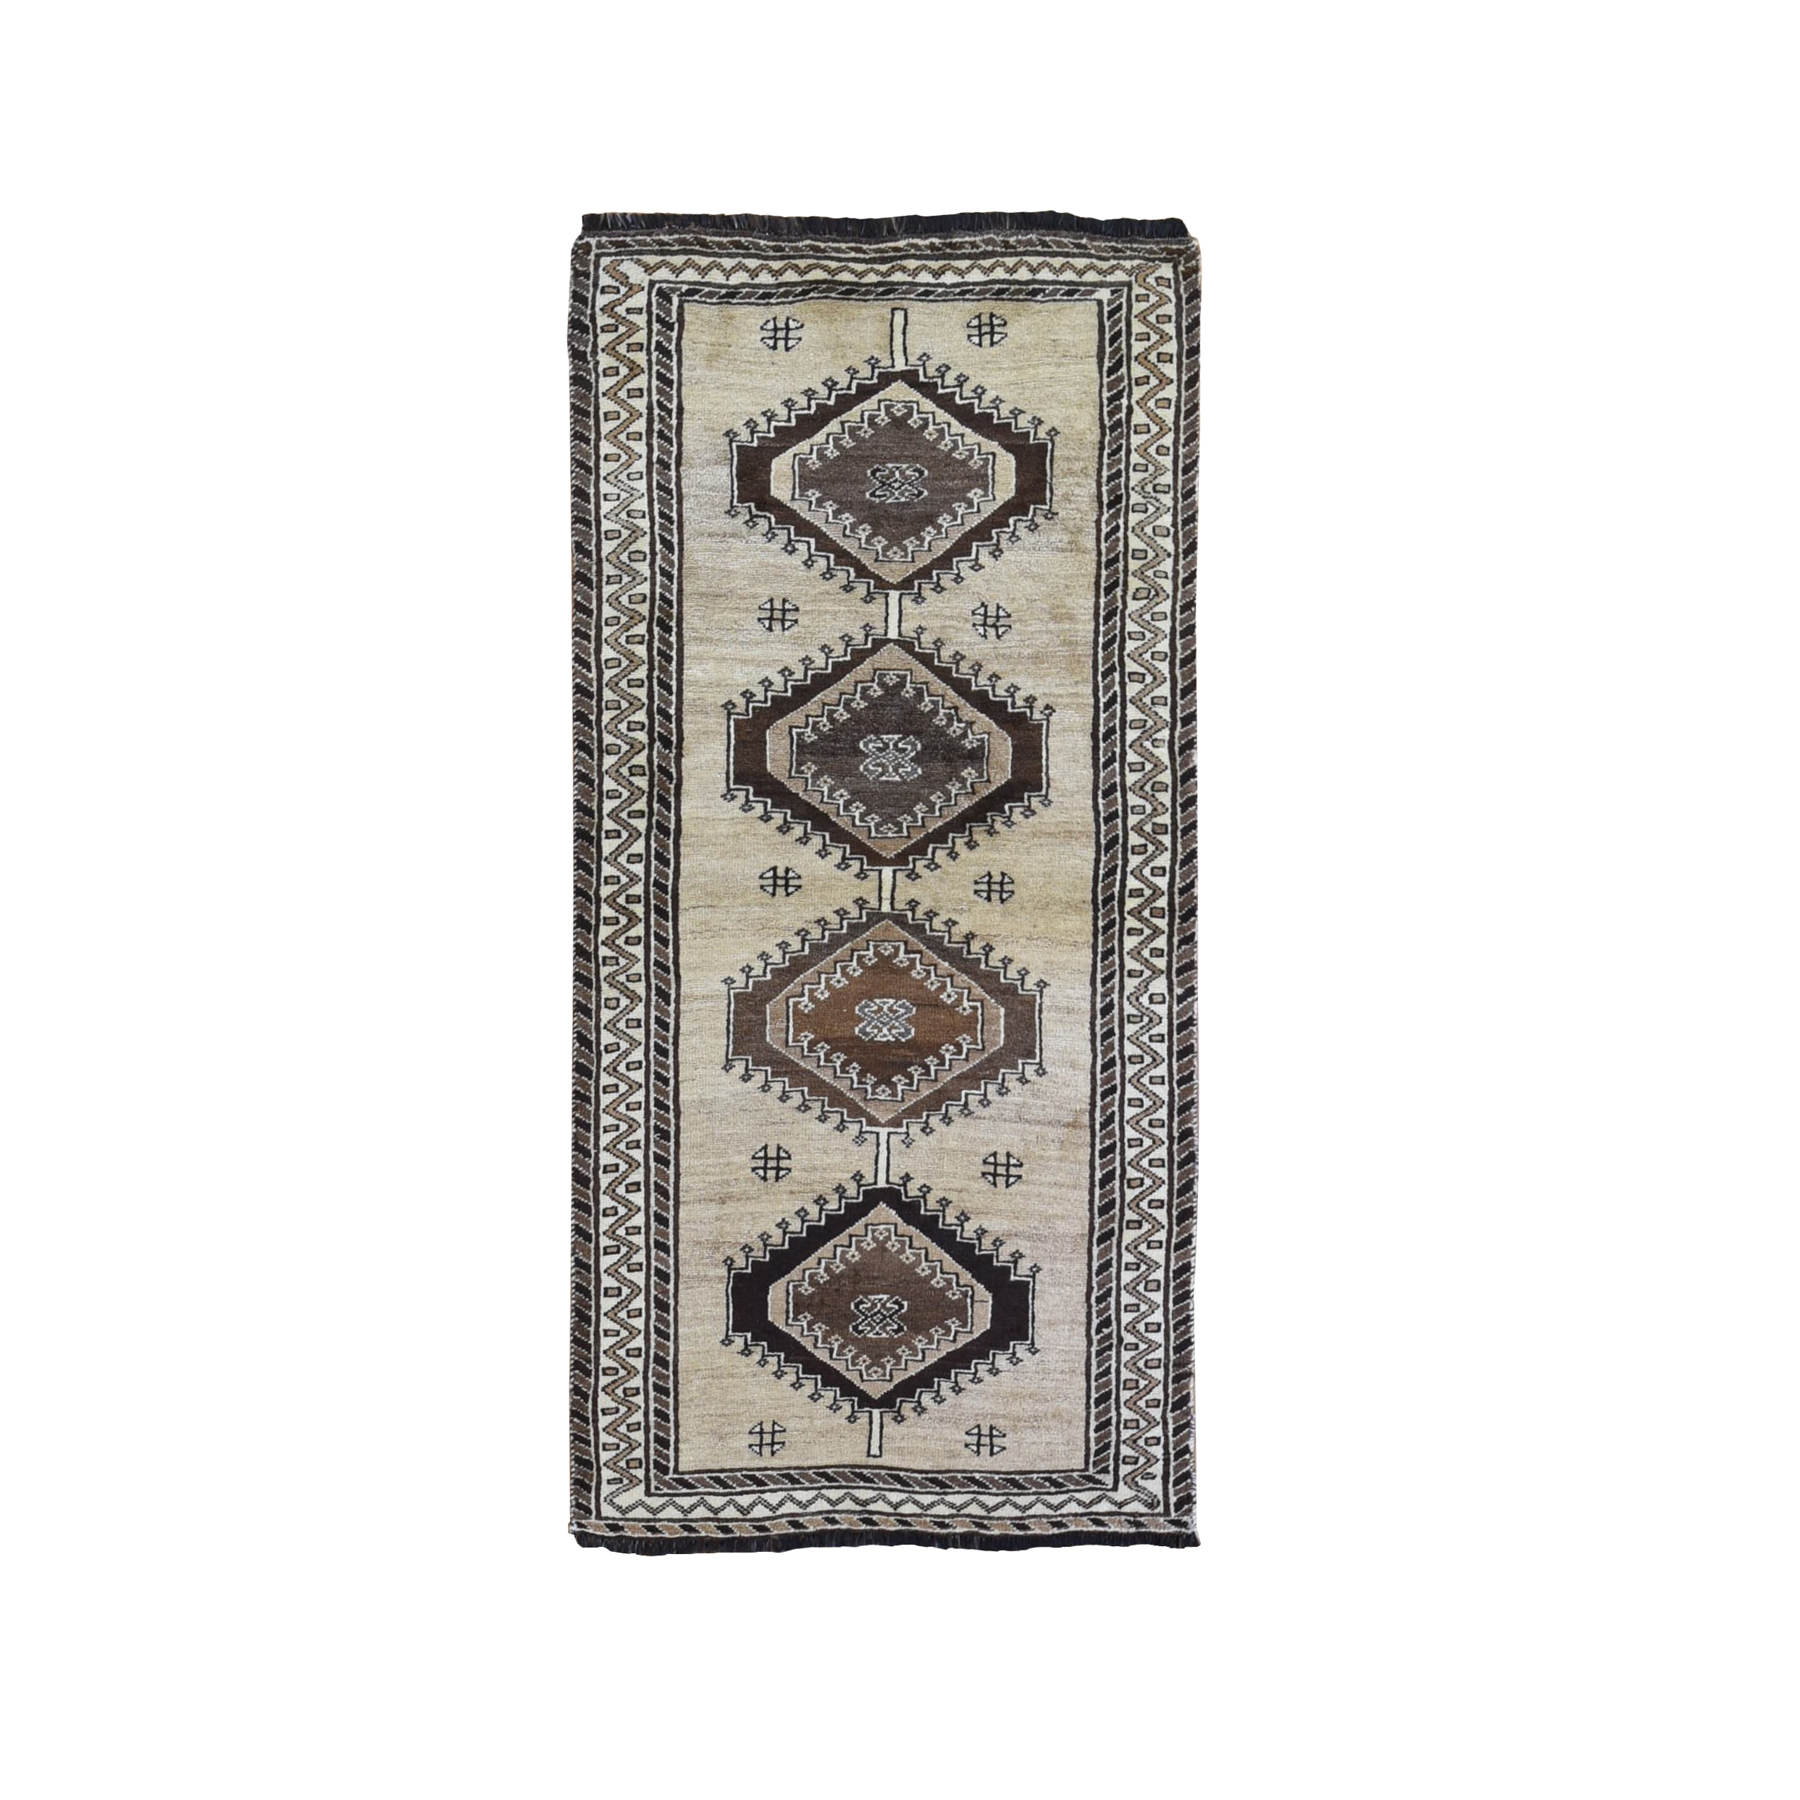 "3'1""x6'6"" Vintage Persian Gabbeh with Natural Wool Color Shades Serrated Medallions Hand Knotted Oriental Rug"